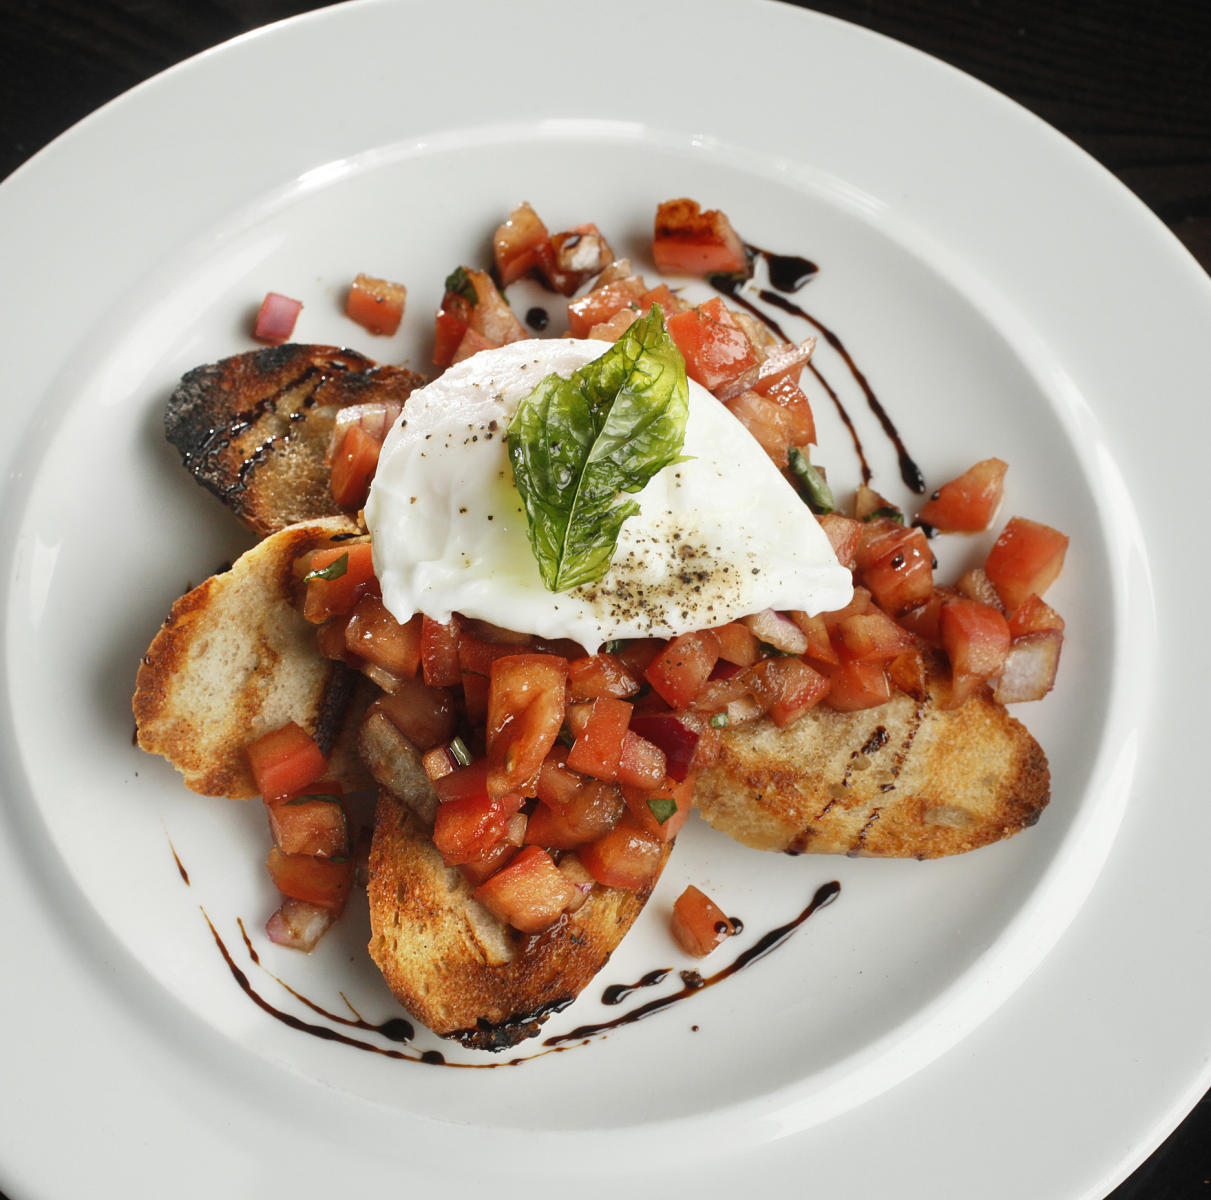 Bruschetta with a poached egg : food : JOHN BORGE STUDIOS Fargo North Dakota Photography Advertising, Public Relations